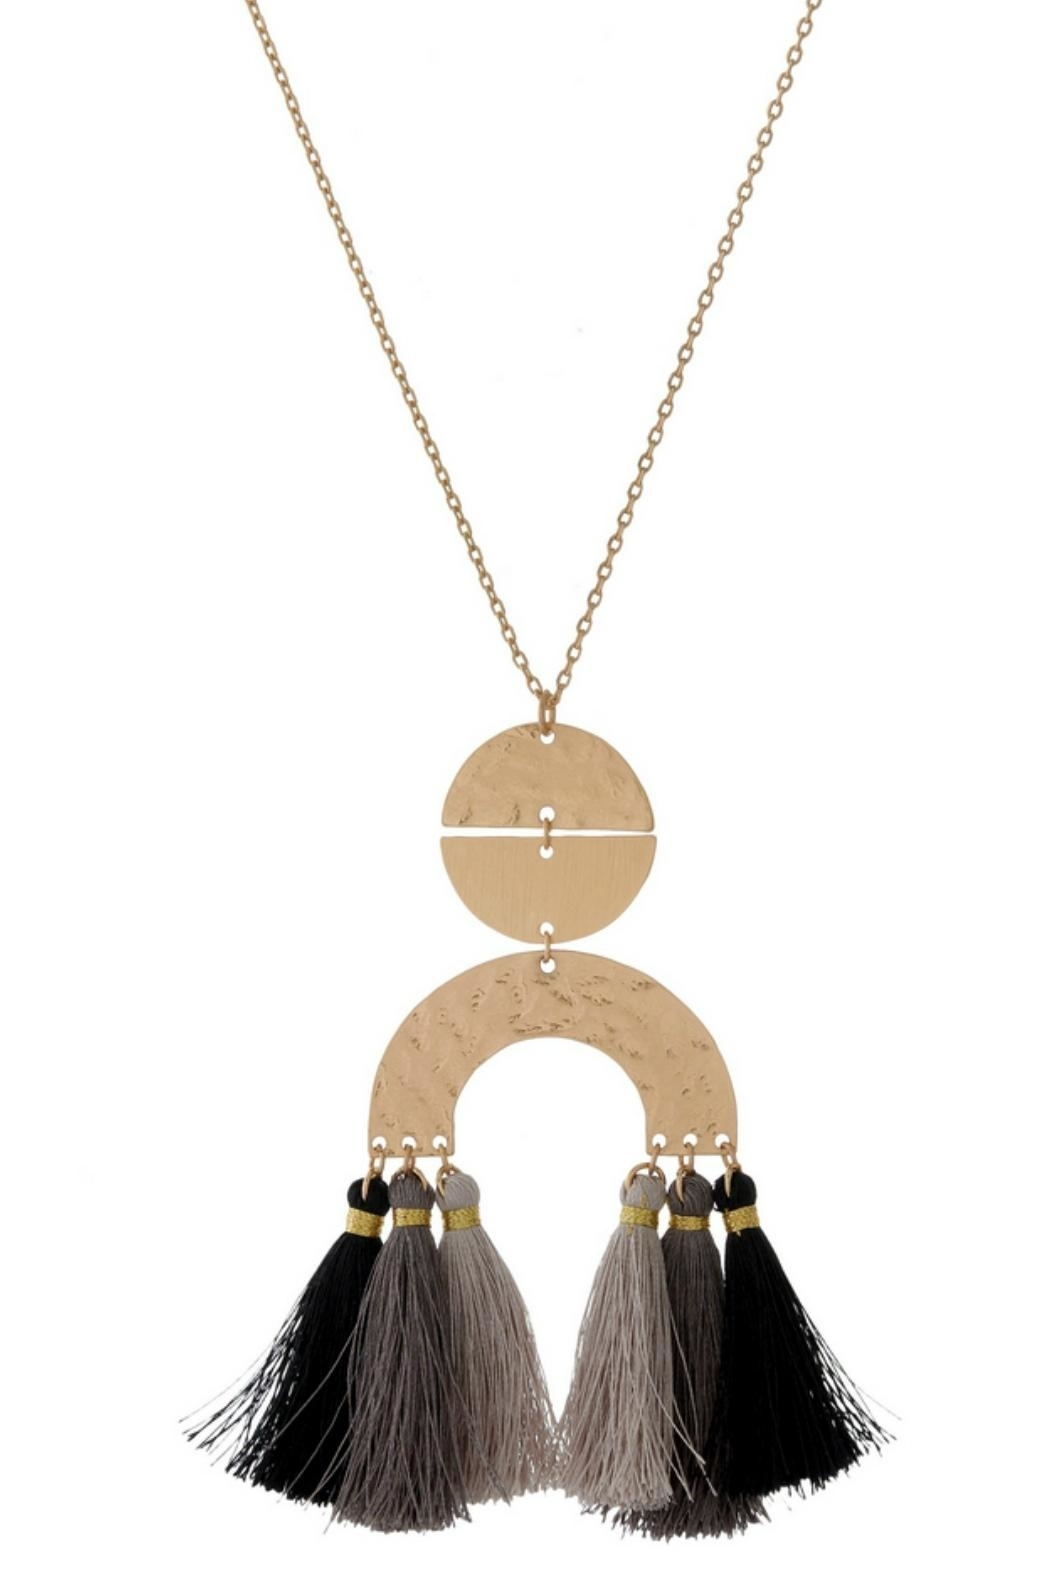 Mimi's Gift Gallery Black/gray Tassels Necklace - Main Image